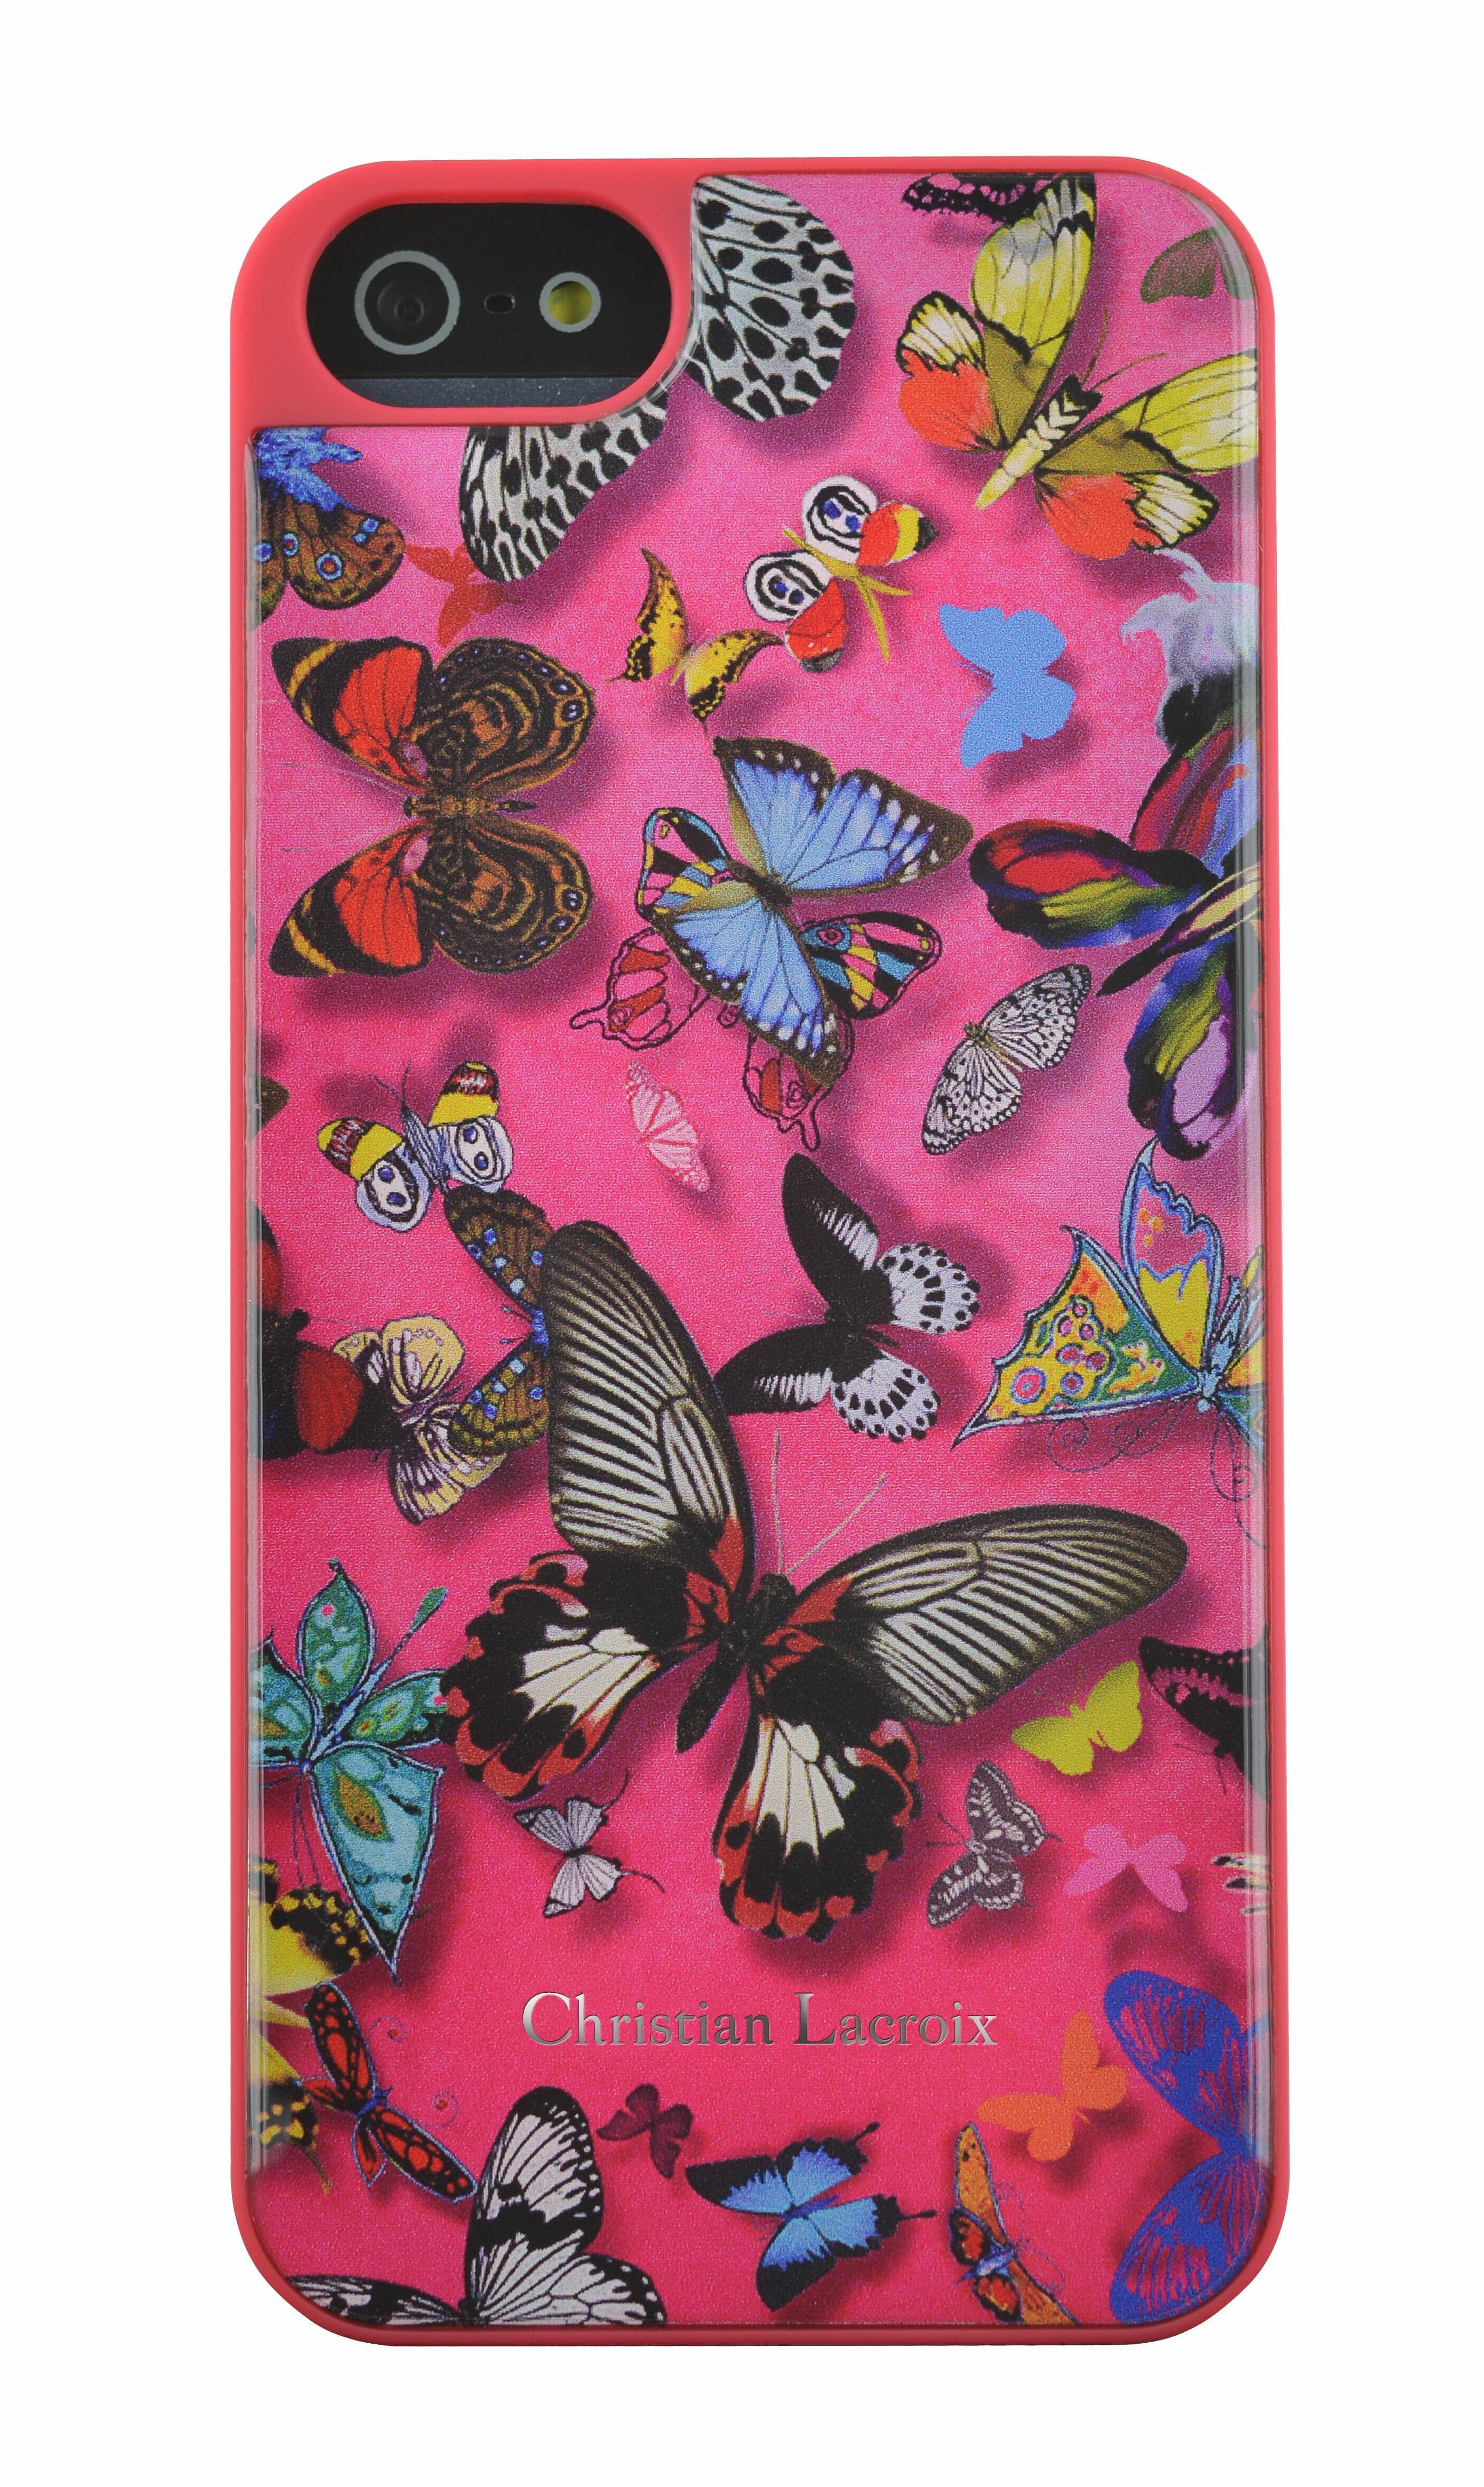 Butterfly Parade smartphone case